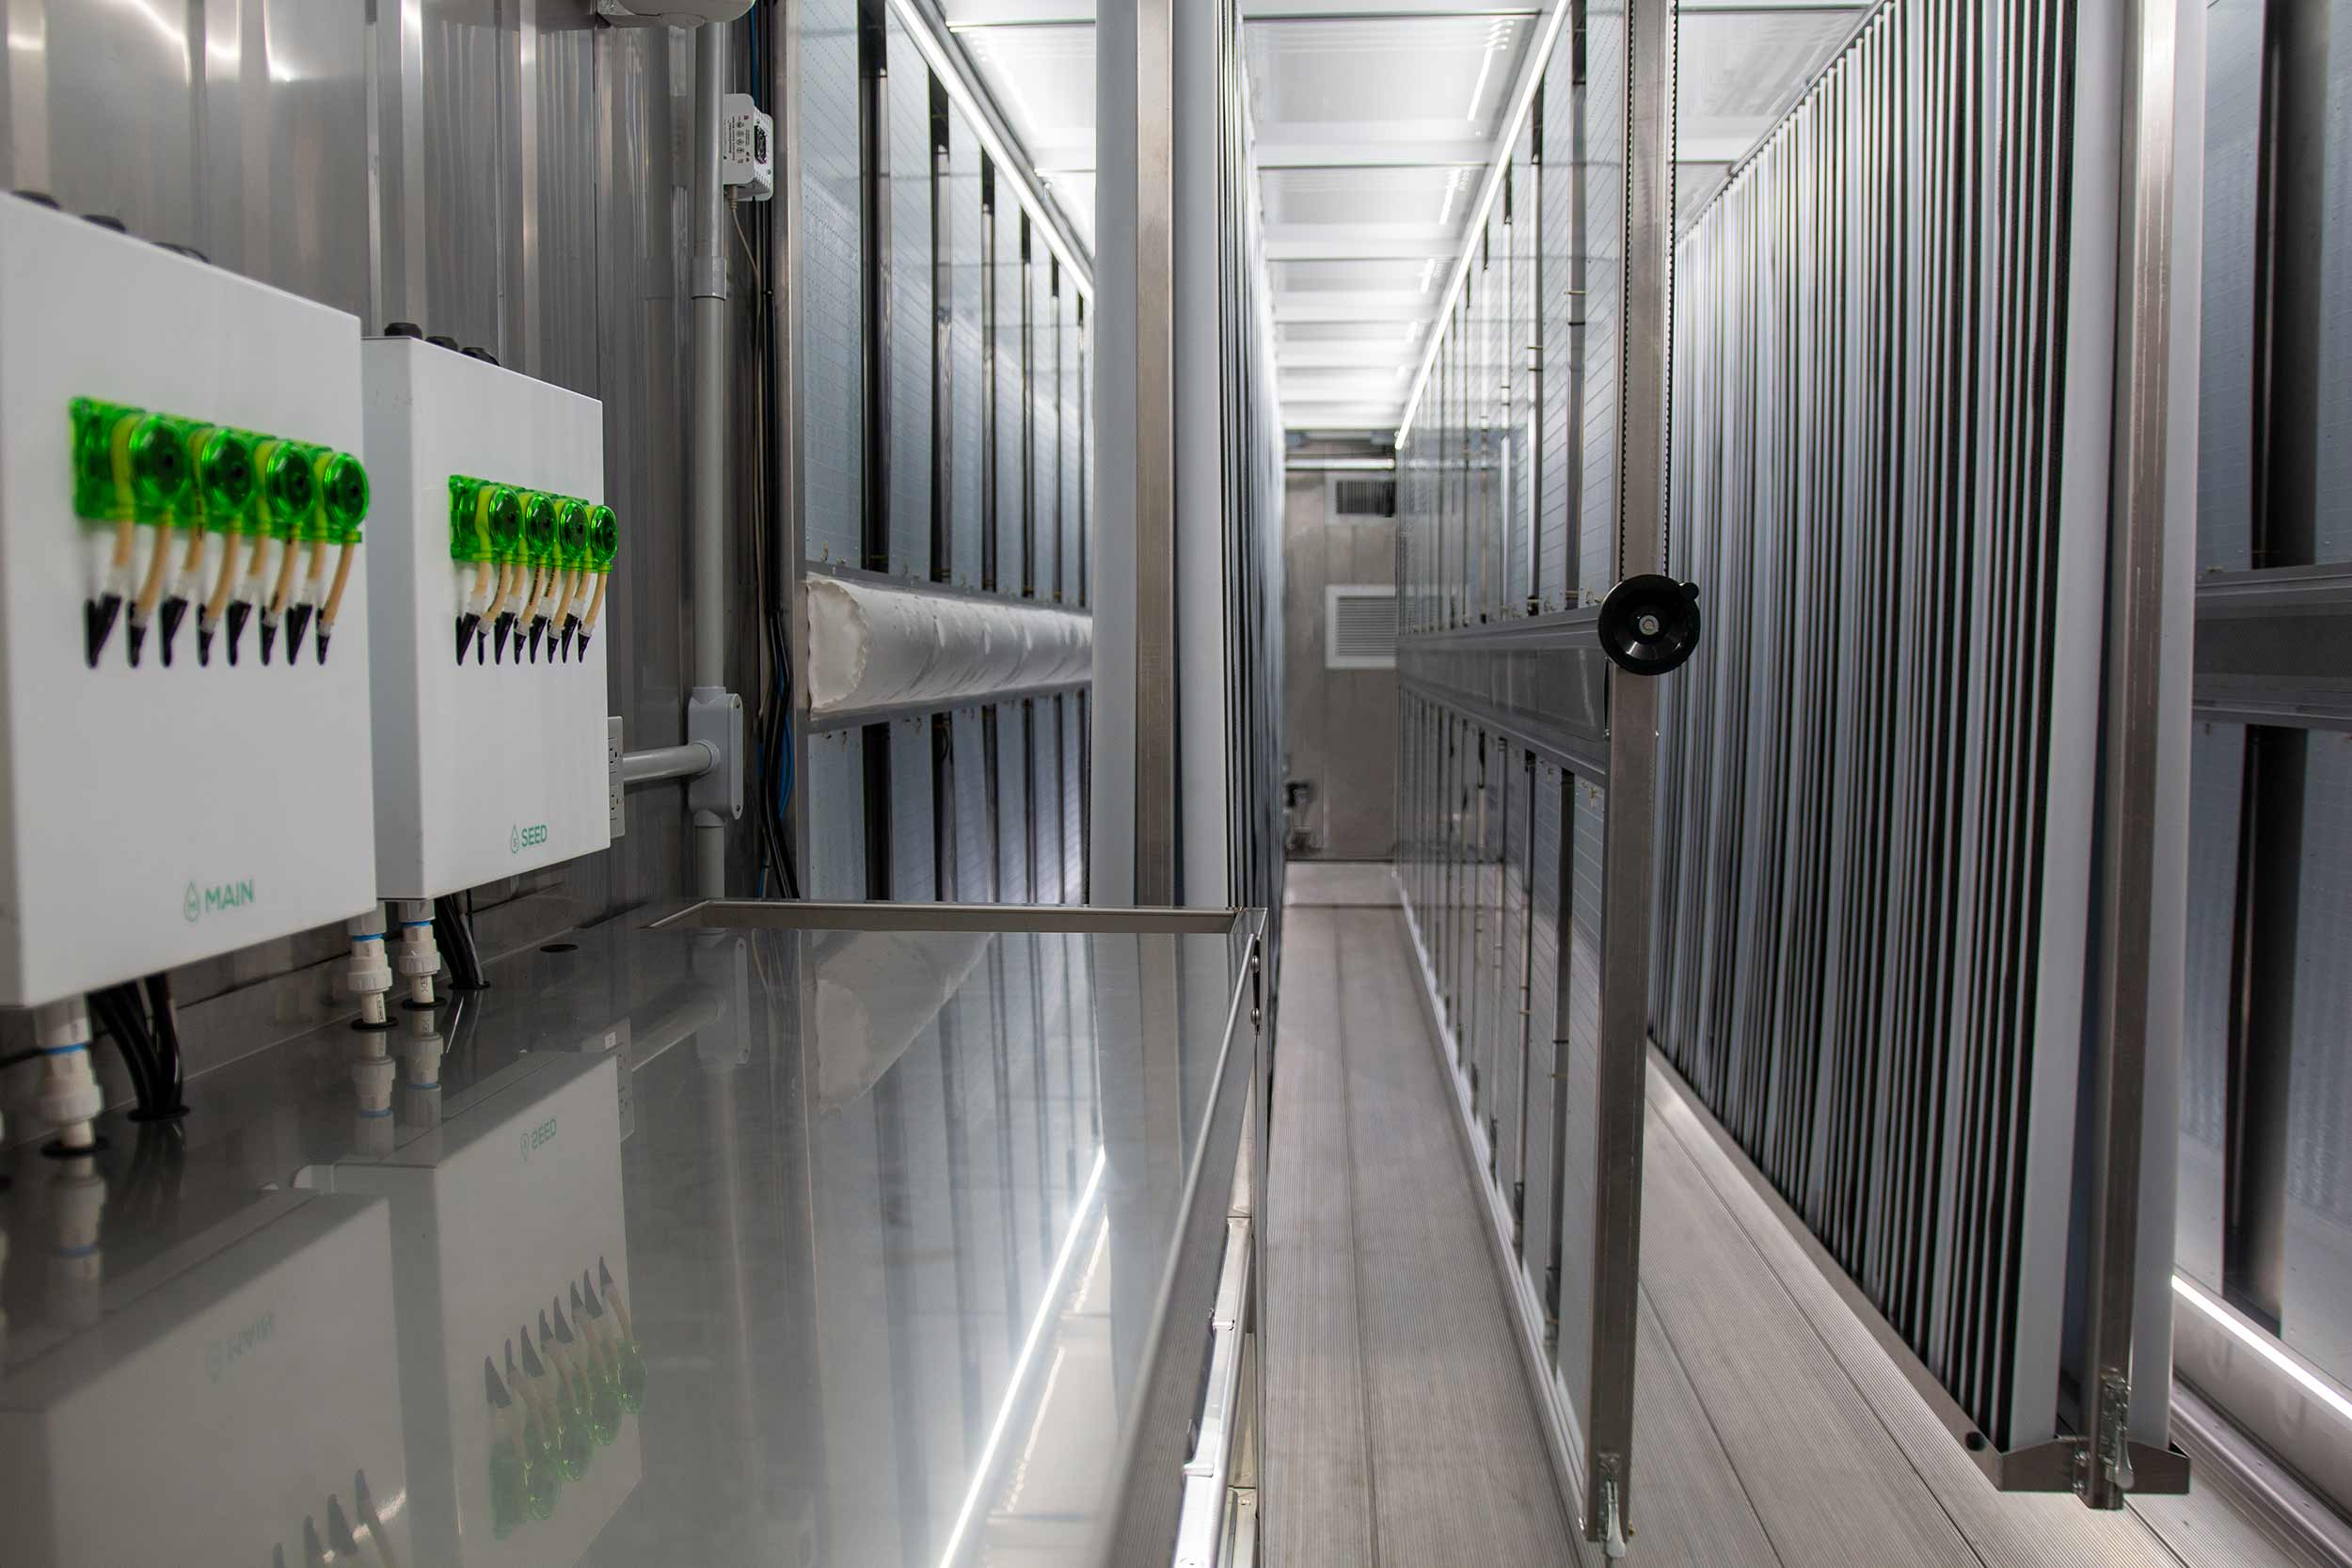 Freight-Farms-Hydroponic-Container-Farm-Interior.jpg